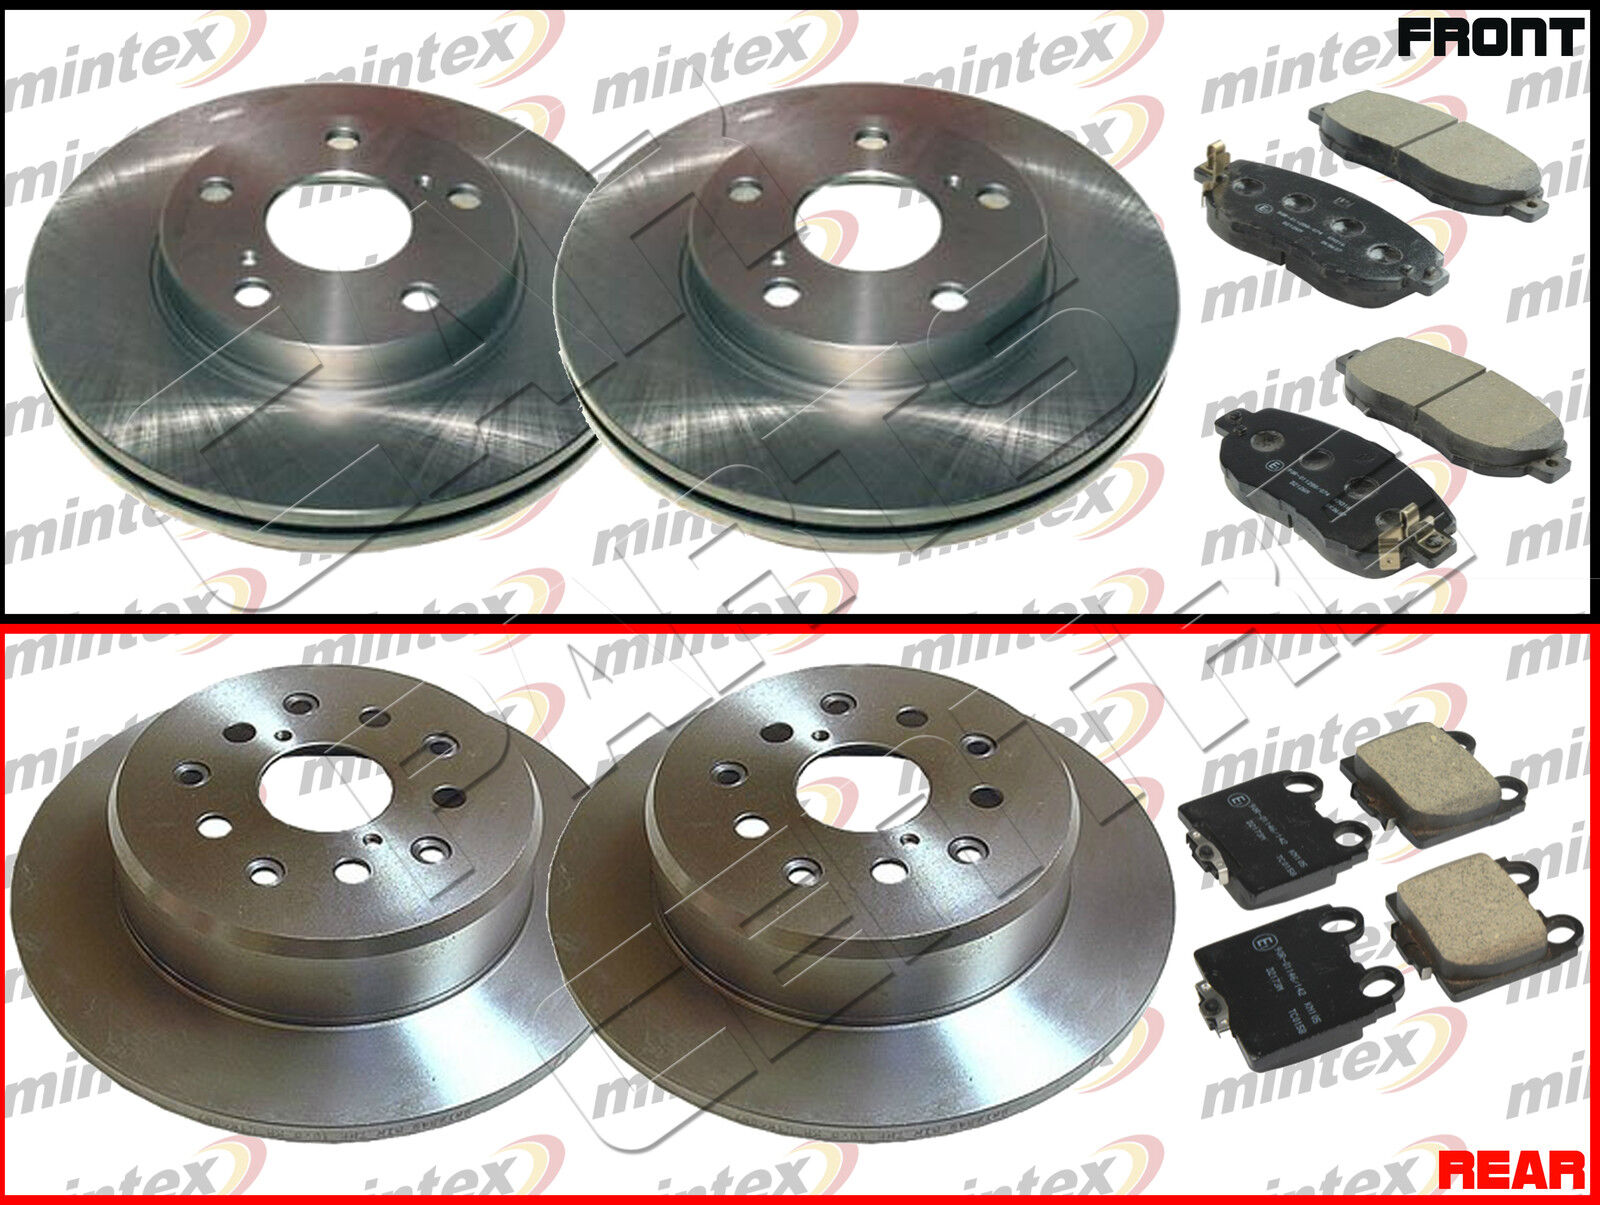 FOR LEXUS IS200 ALTEZZA 2.0i FRONT and REAR MINTEX BRAKE DISC DISCS PAD PADS SET